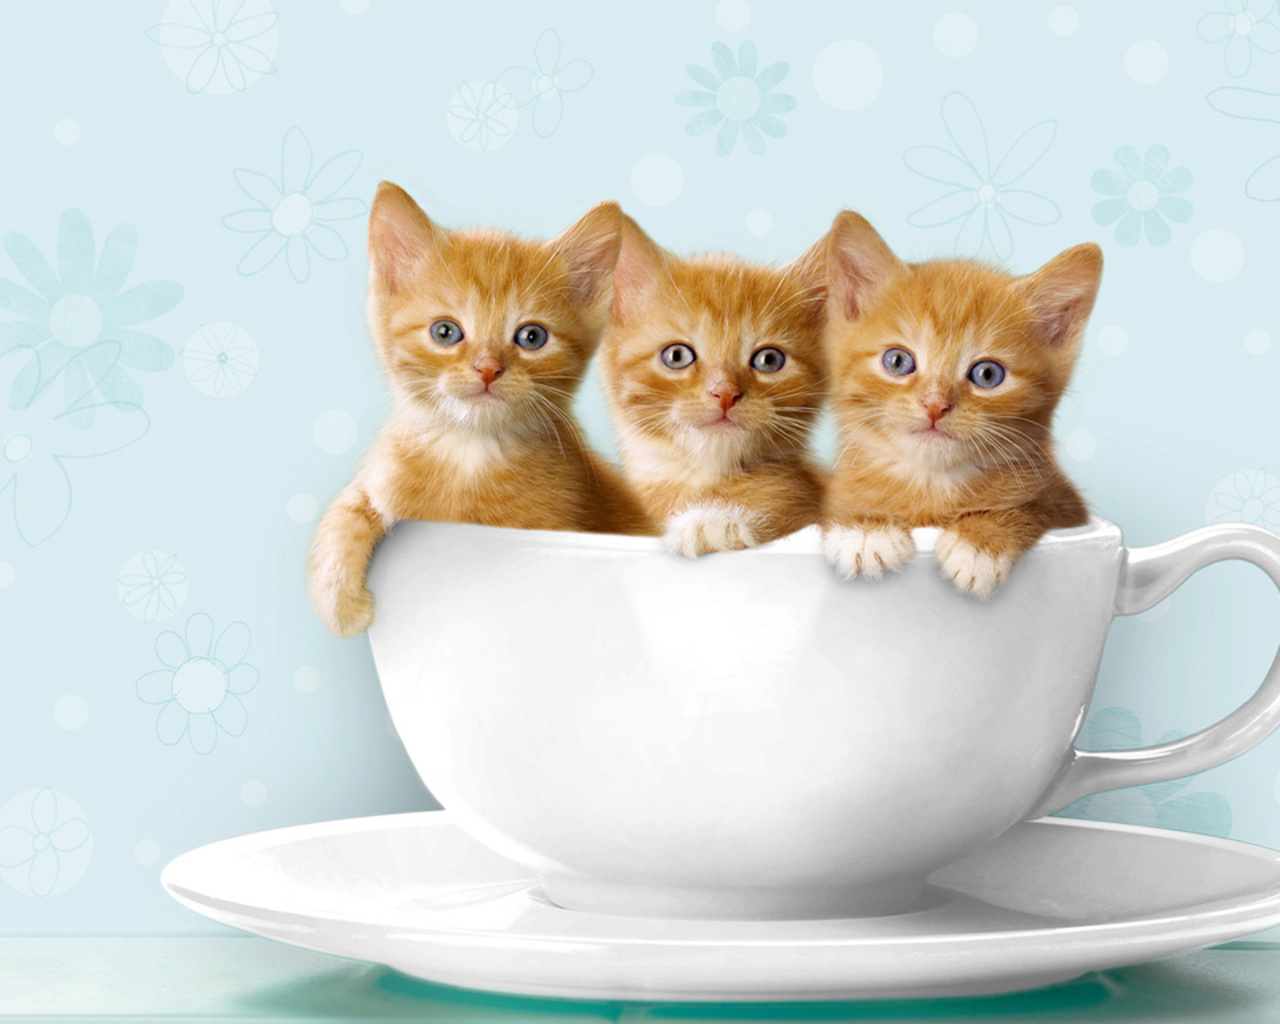 cats cups Kittens three HD Wallpaper